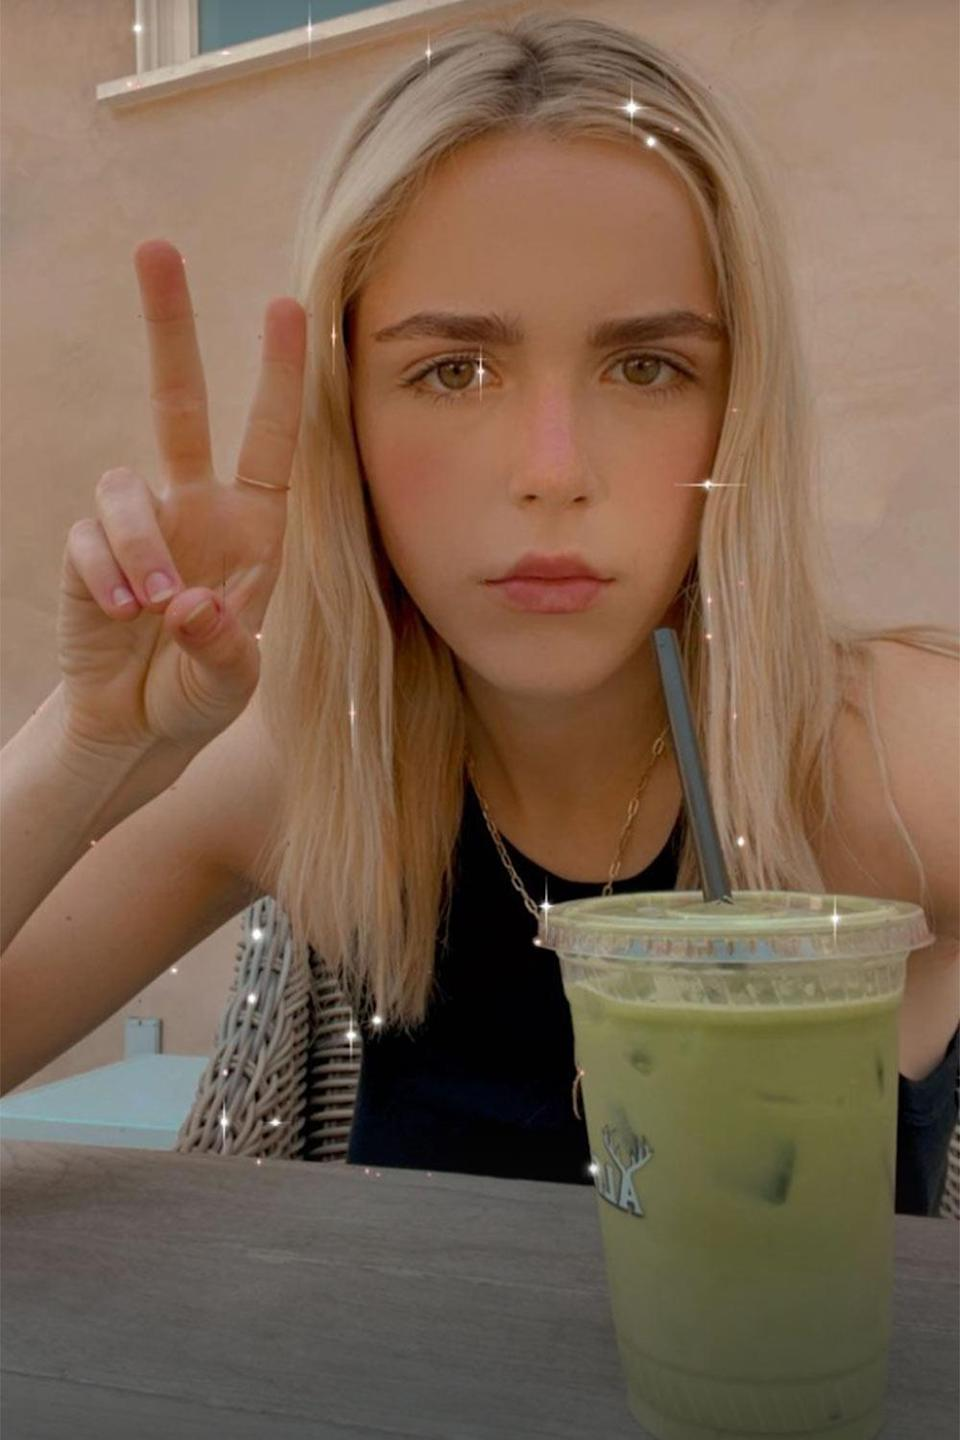 <p>The actress, 21, snapped this cute selfie while enjoying a matcha drink.</p>